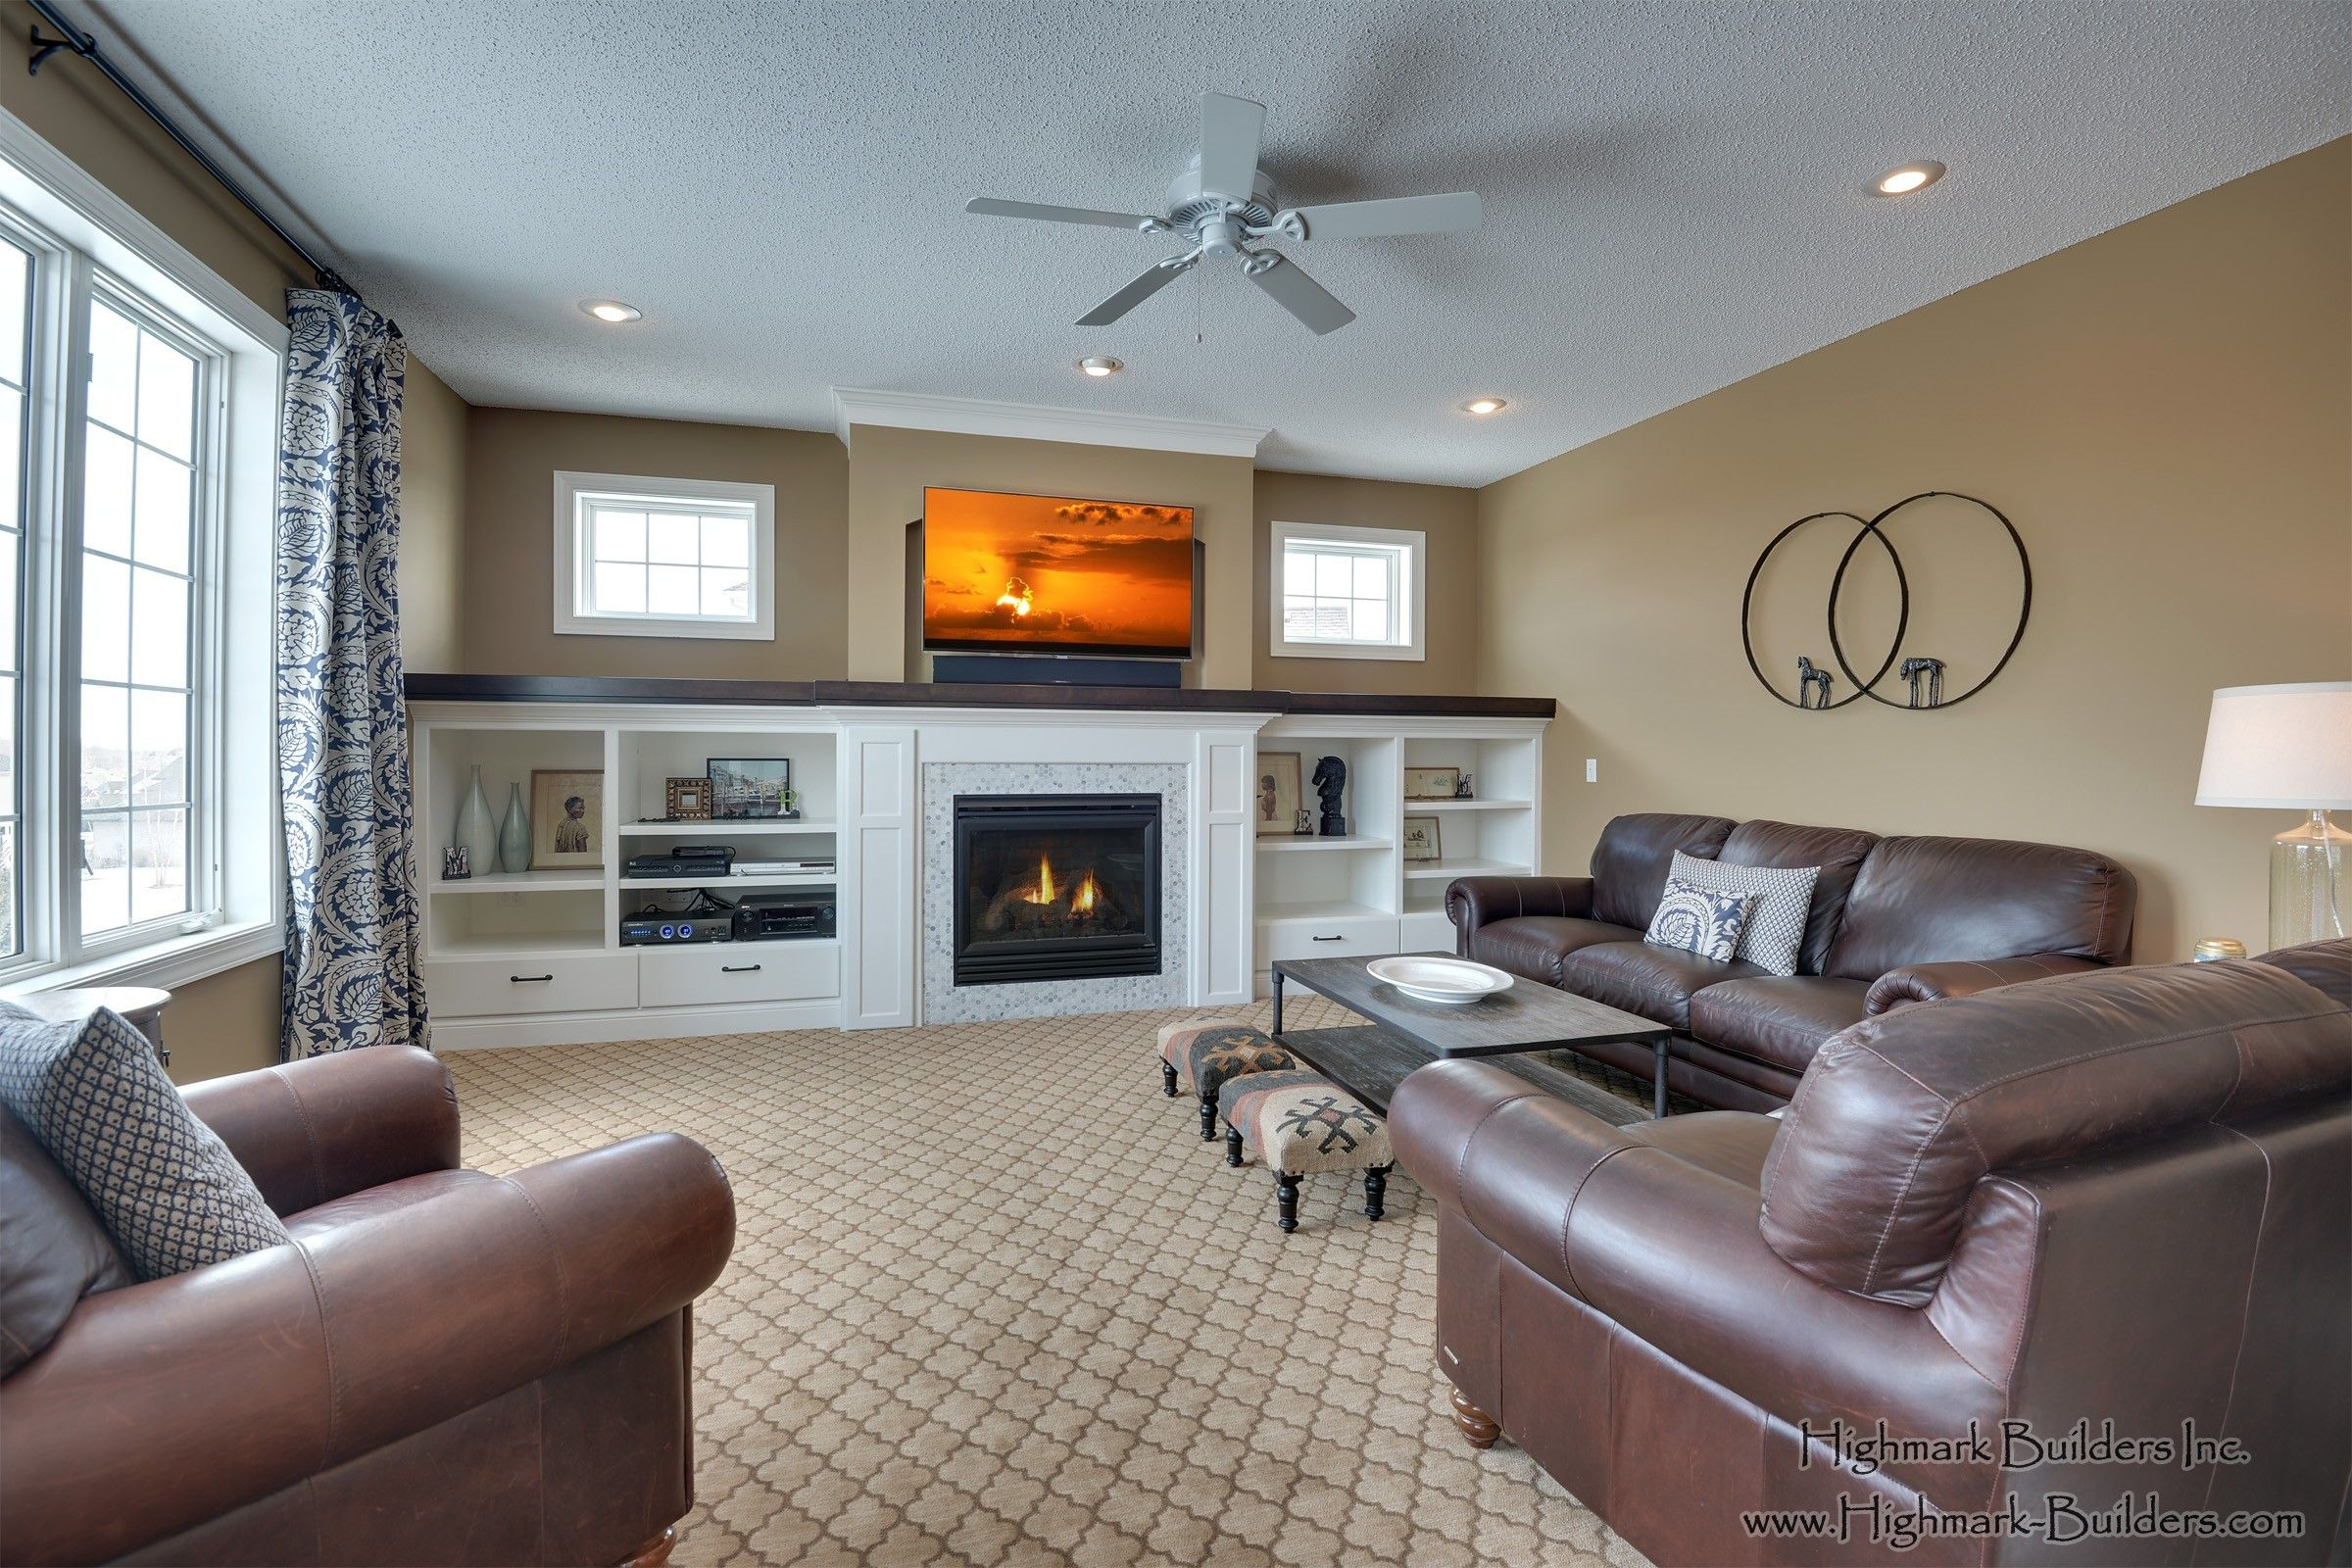 Great Room Built-Ins | Home, Custom homes, Home builders